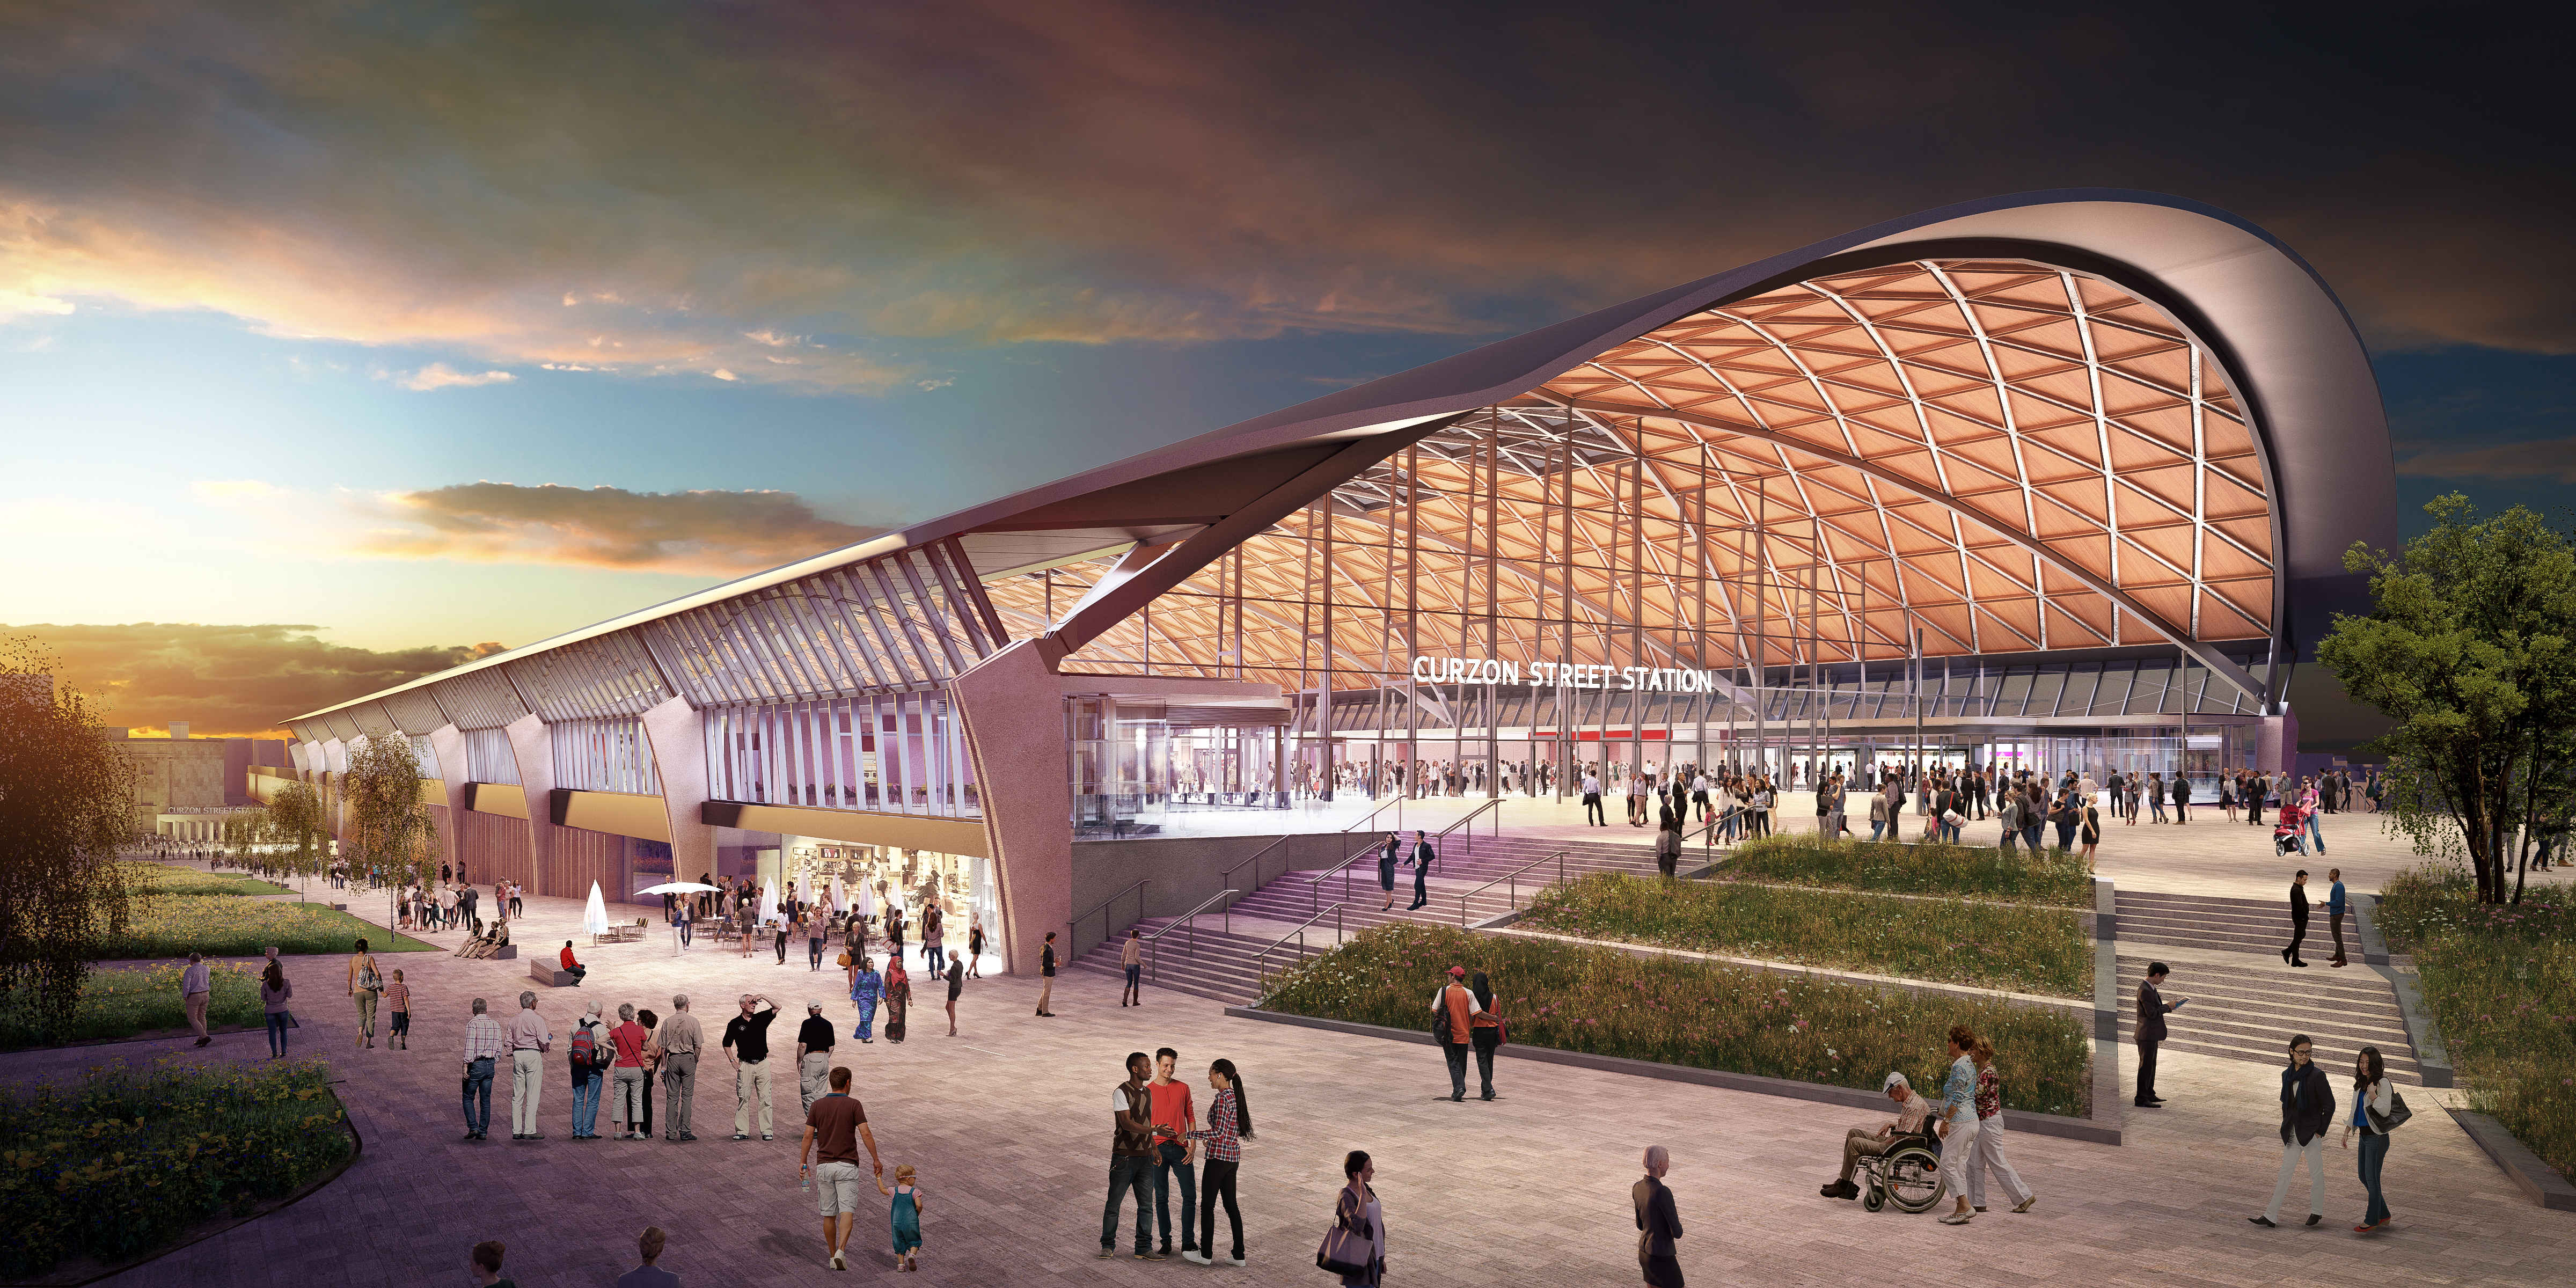 Get on board and help bring HS2's station designs to life